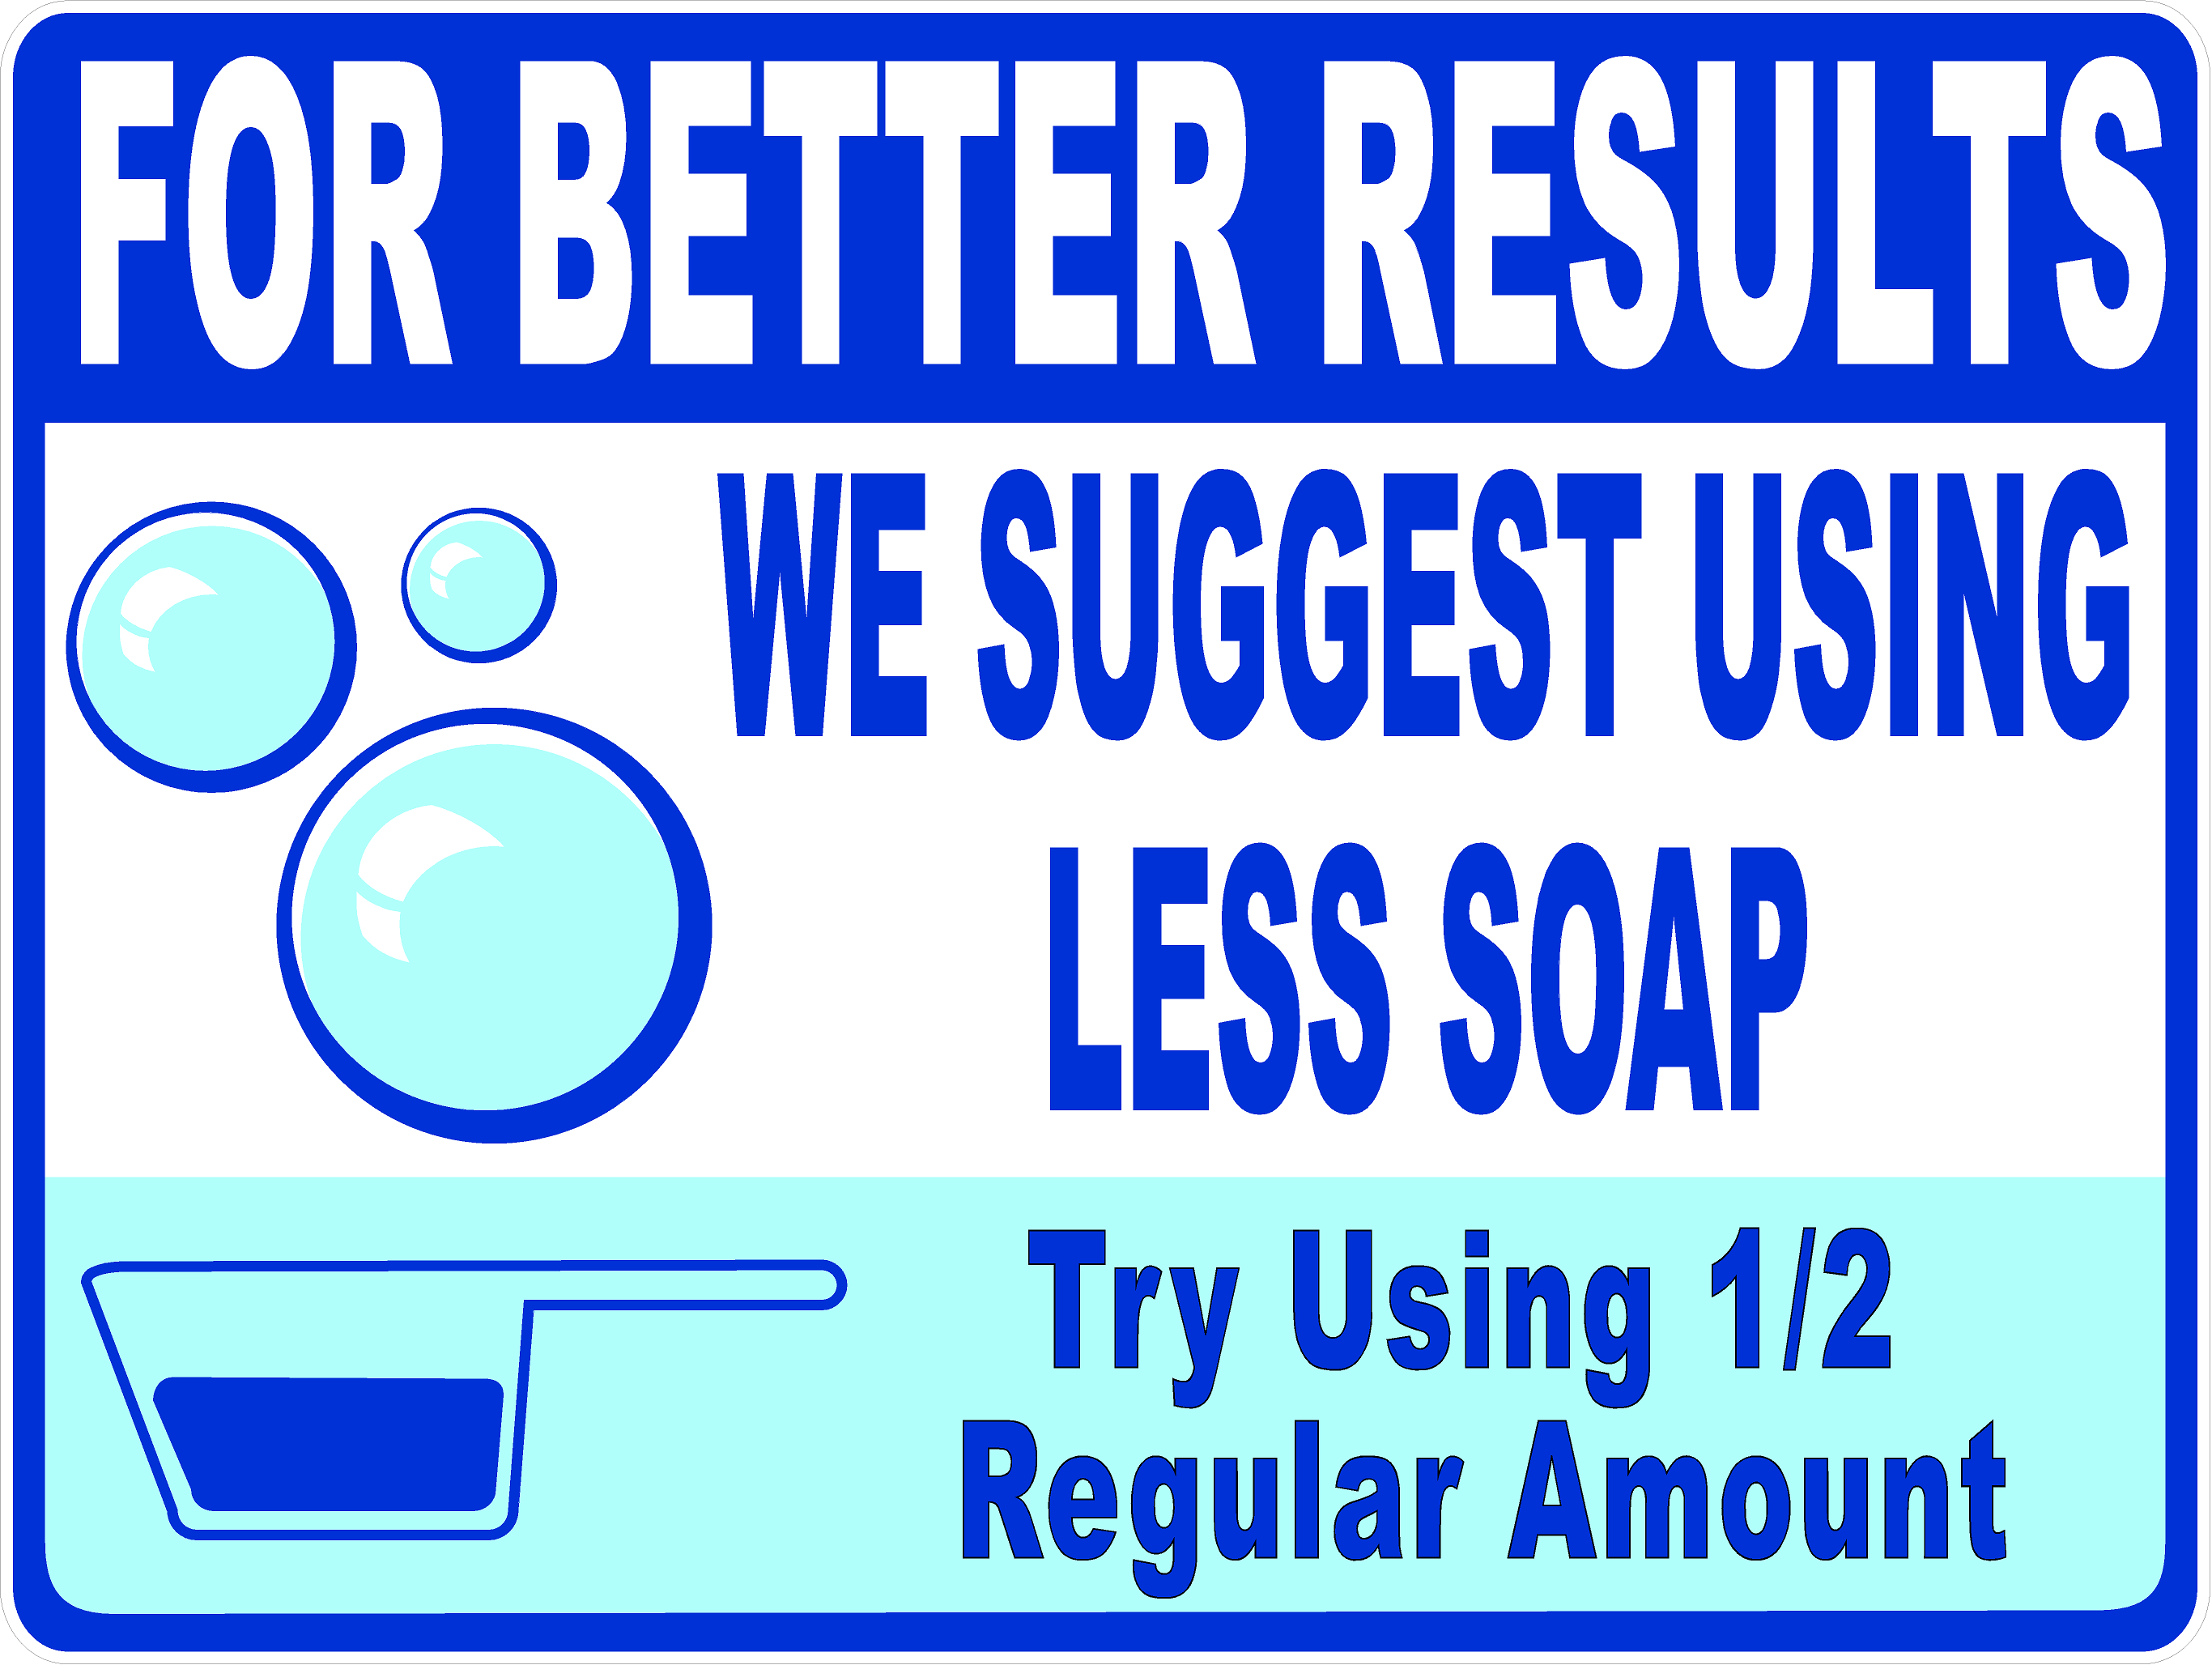 For Better Results Use Less Soap Laundromat Washing Machine Sign Washing Machine Laundromat Soap